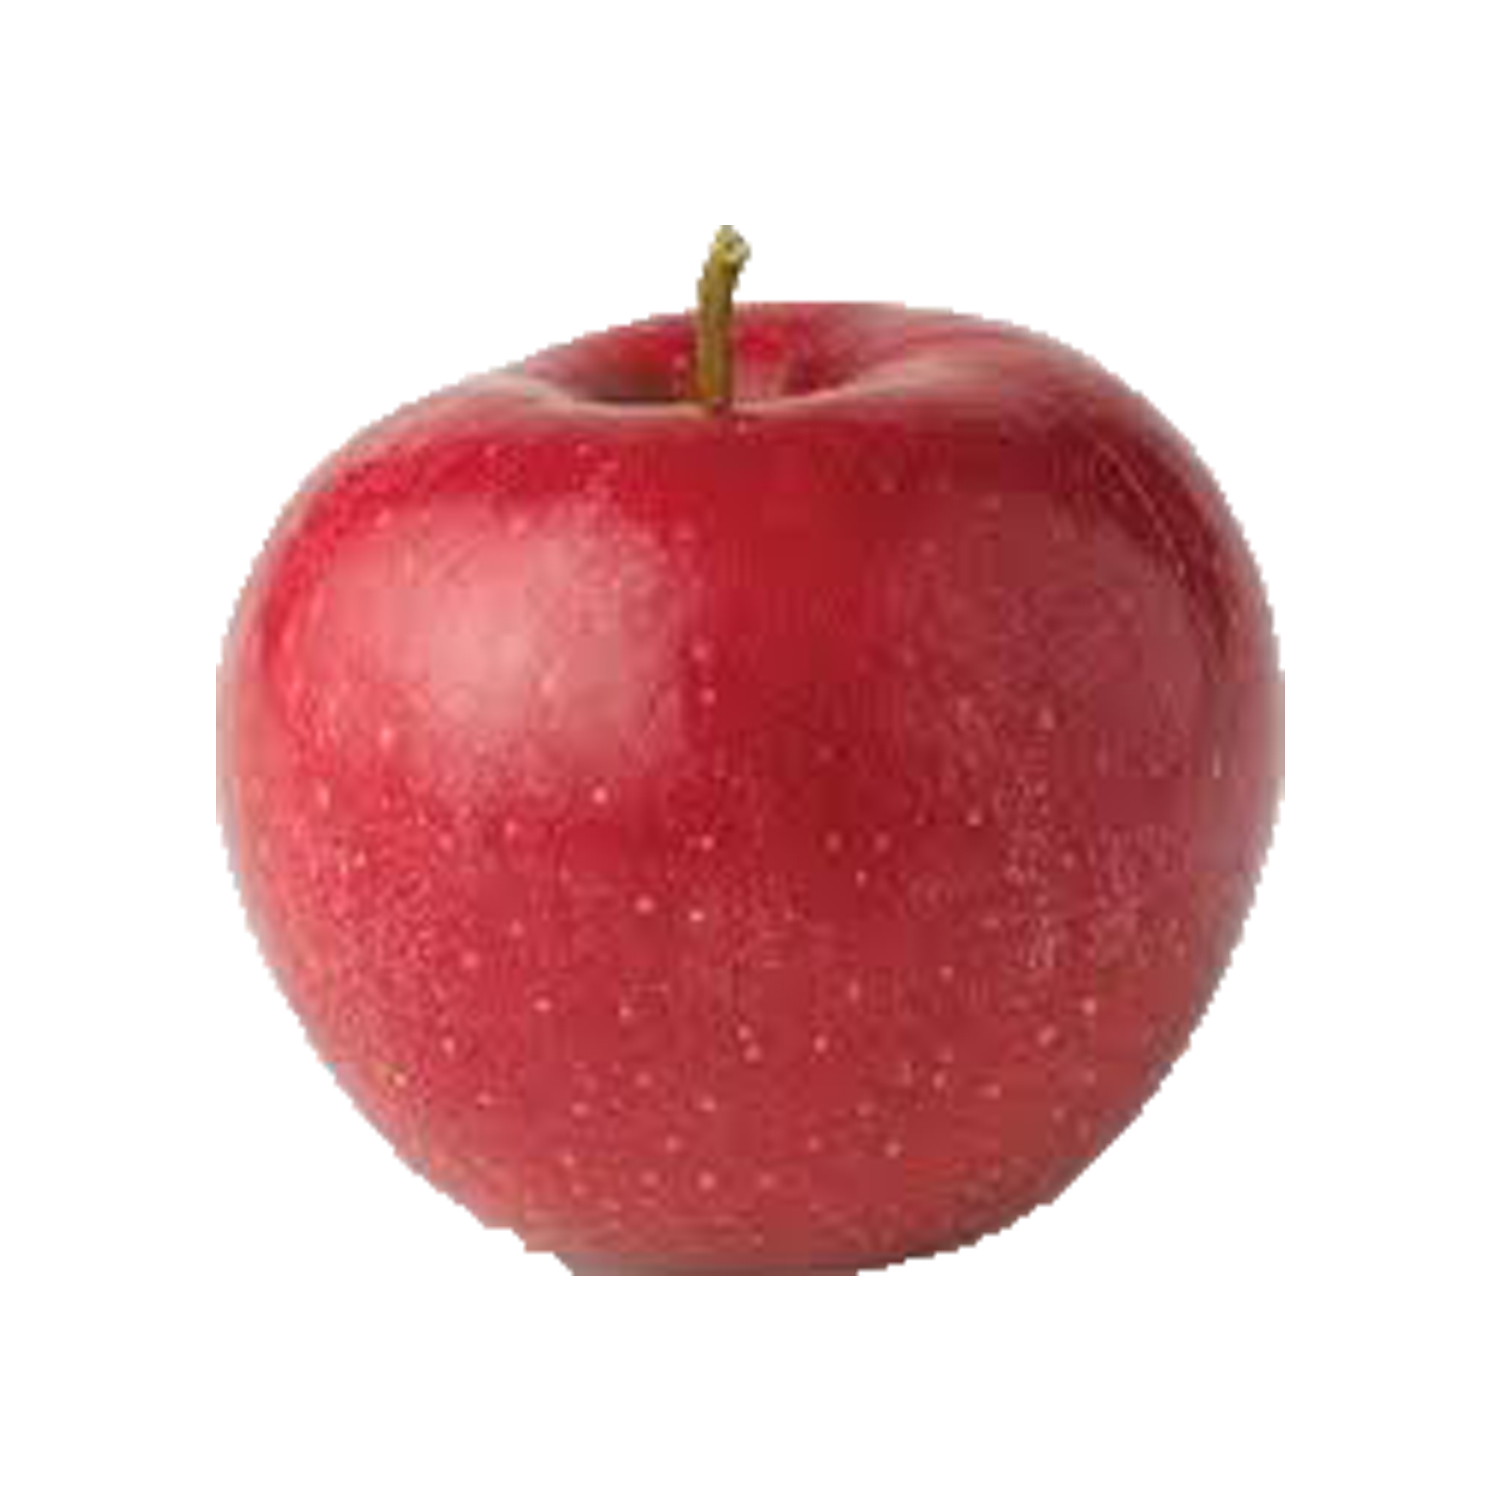 Medium Gala Apples (Each)